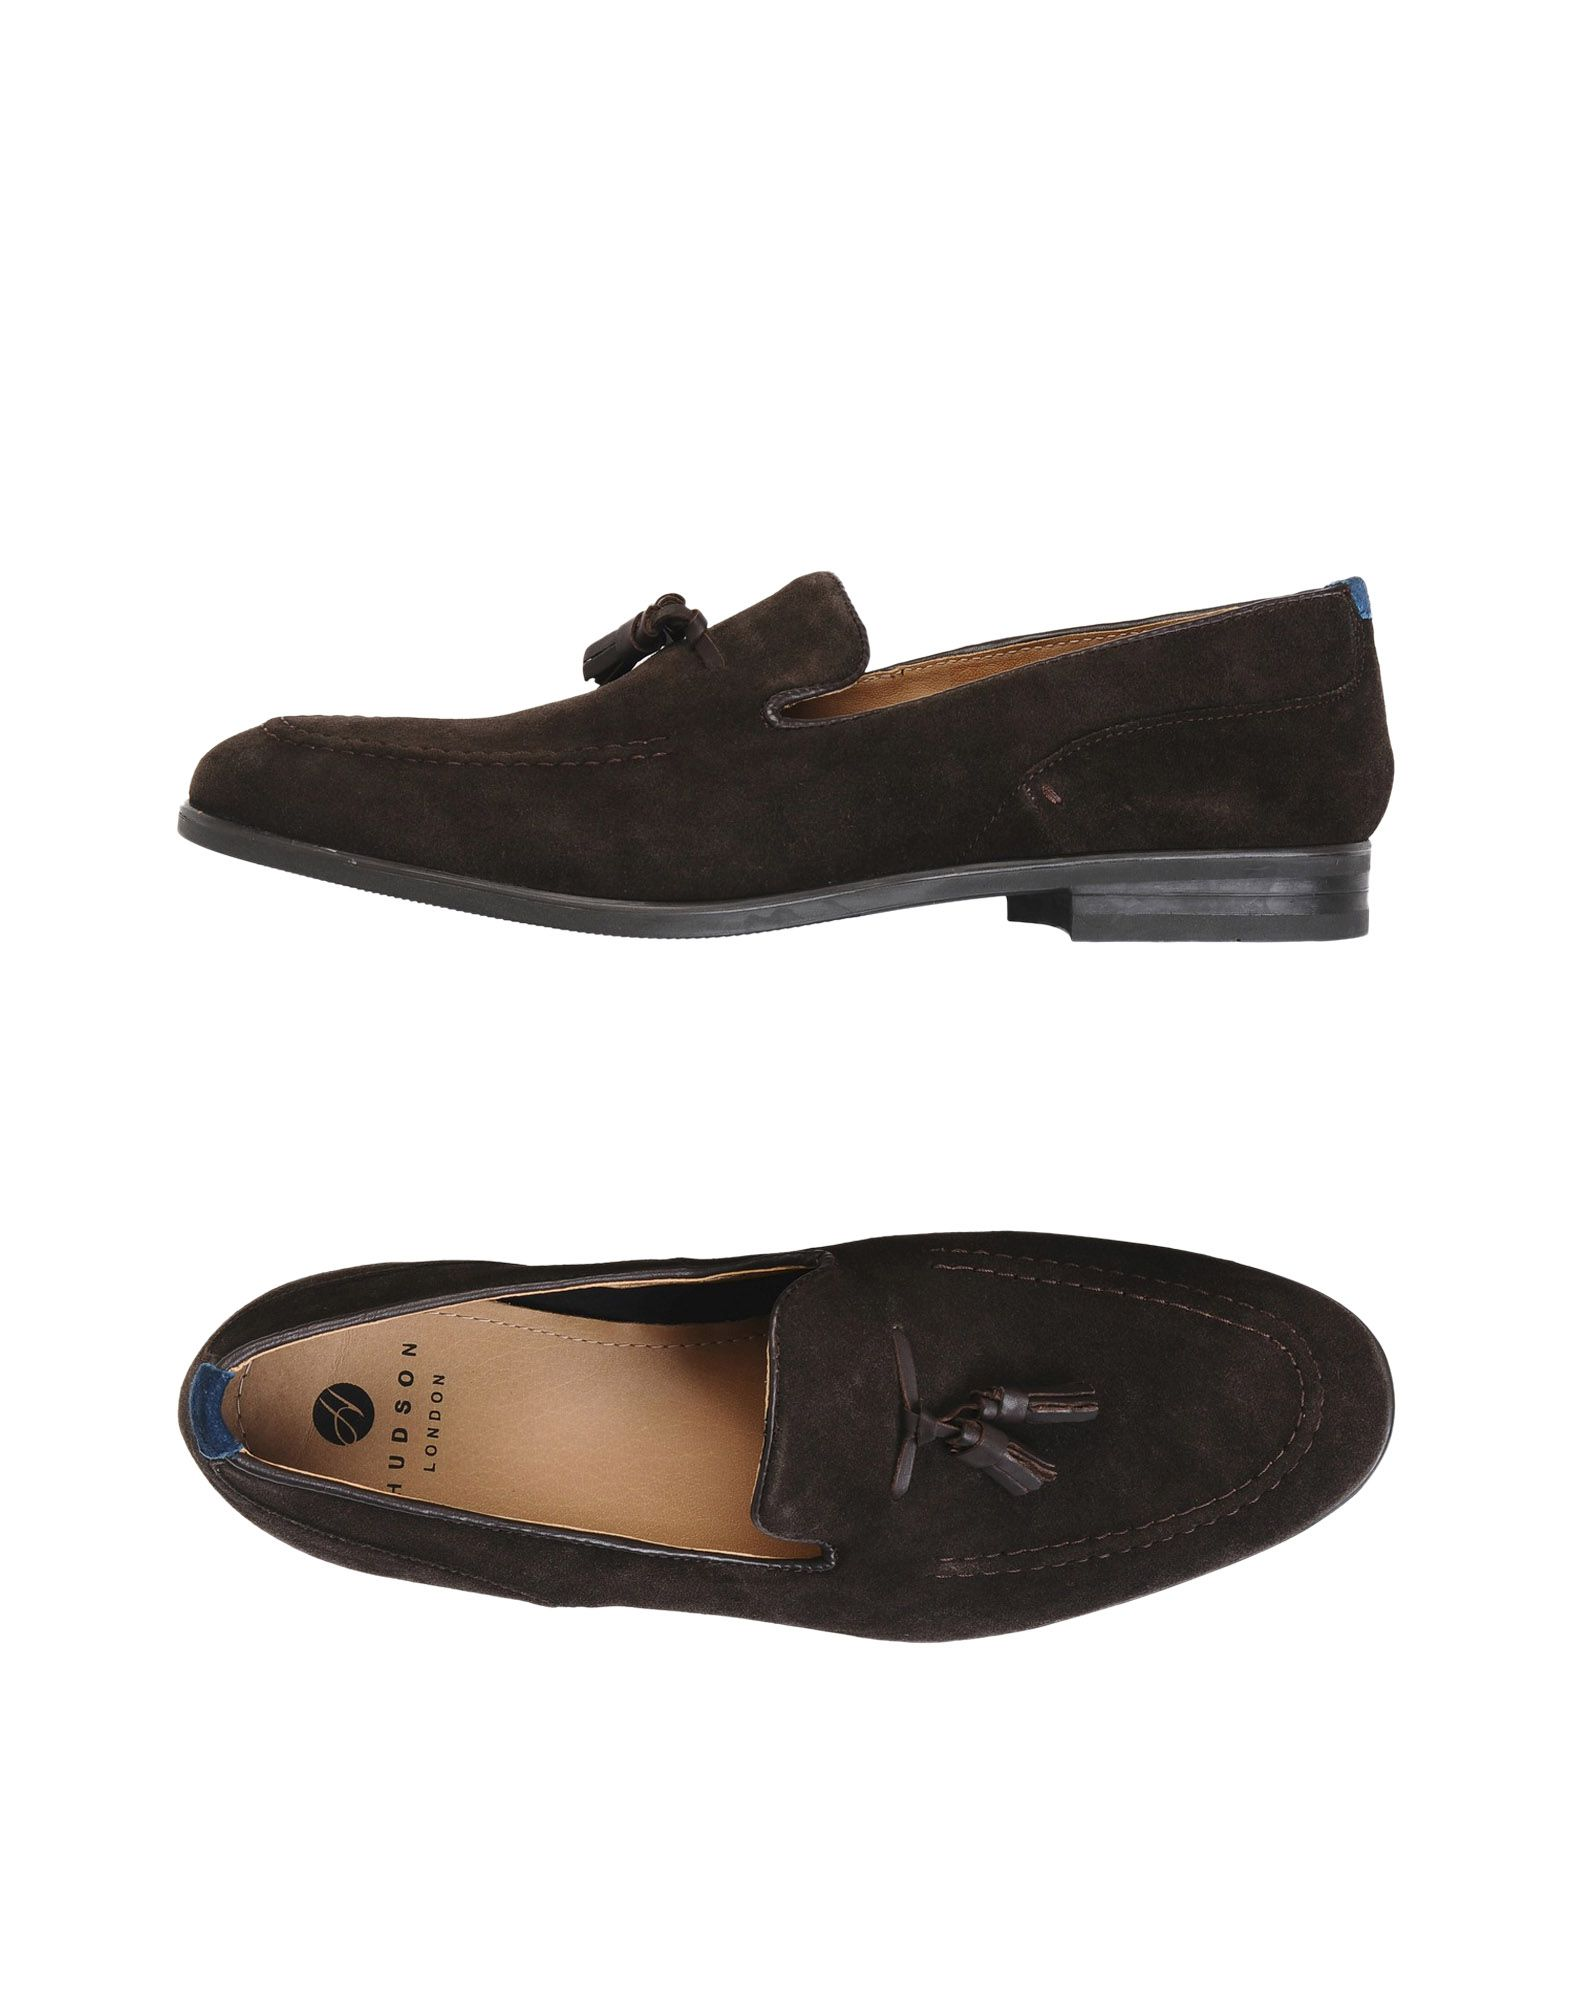 H BY HUDSON Loafers in Dark Brown